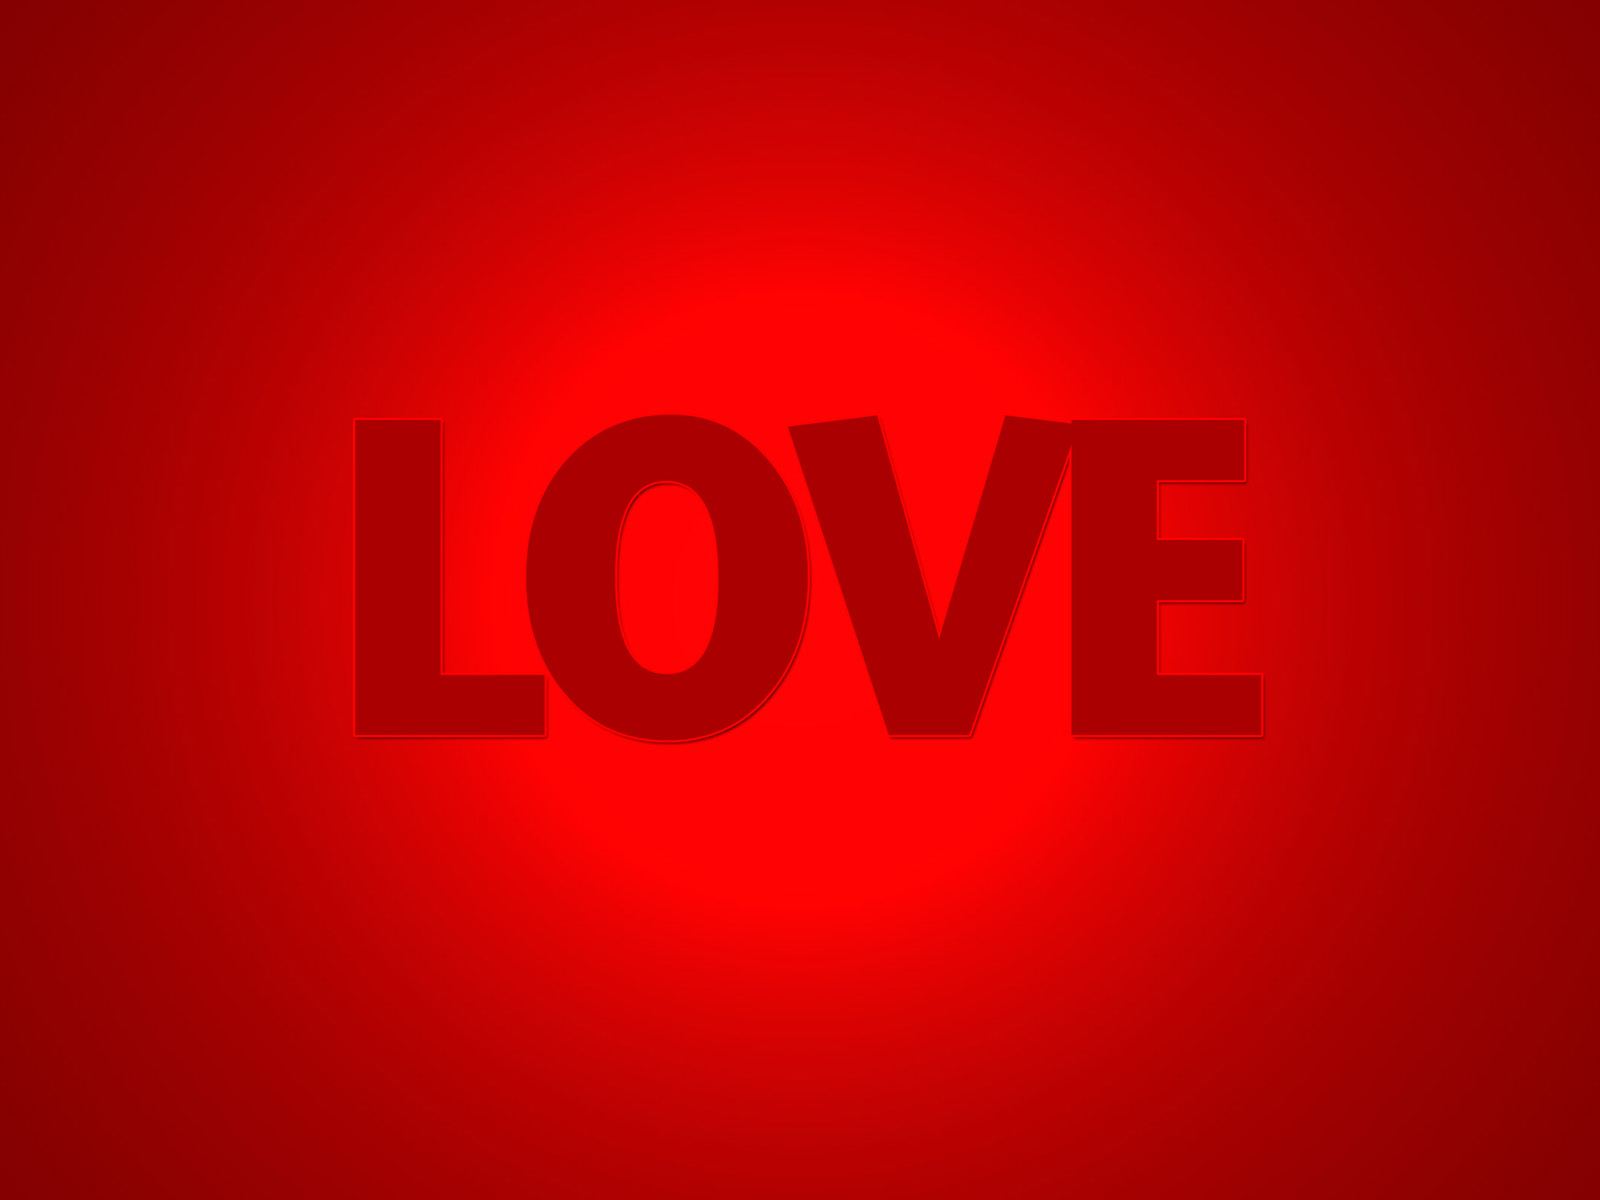 Download All Love wallpaper love red color 1600x1200